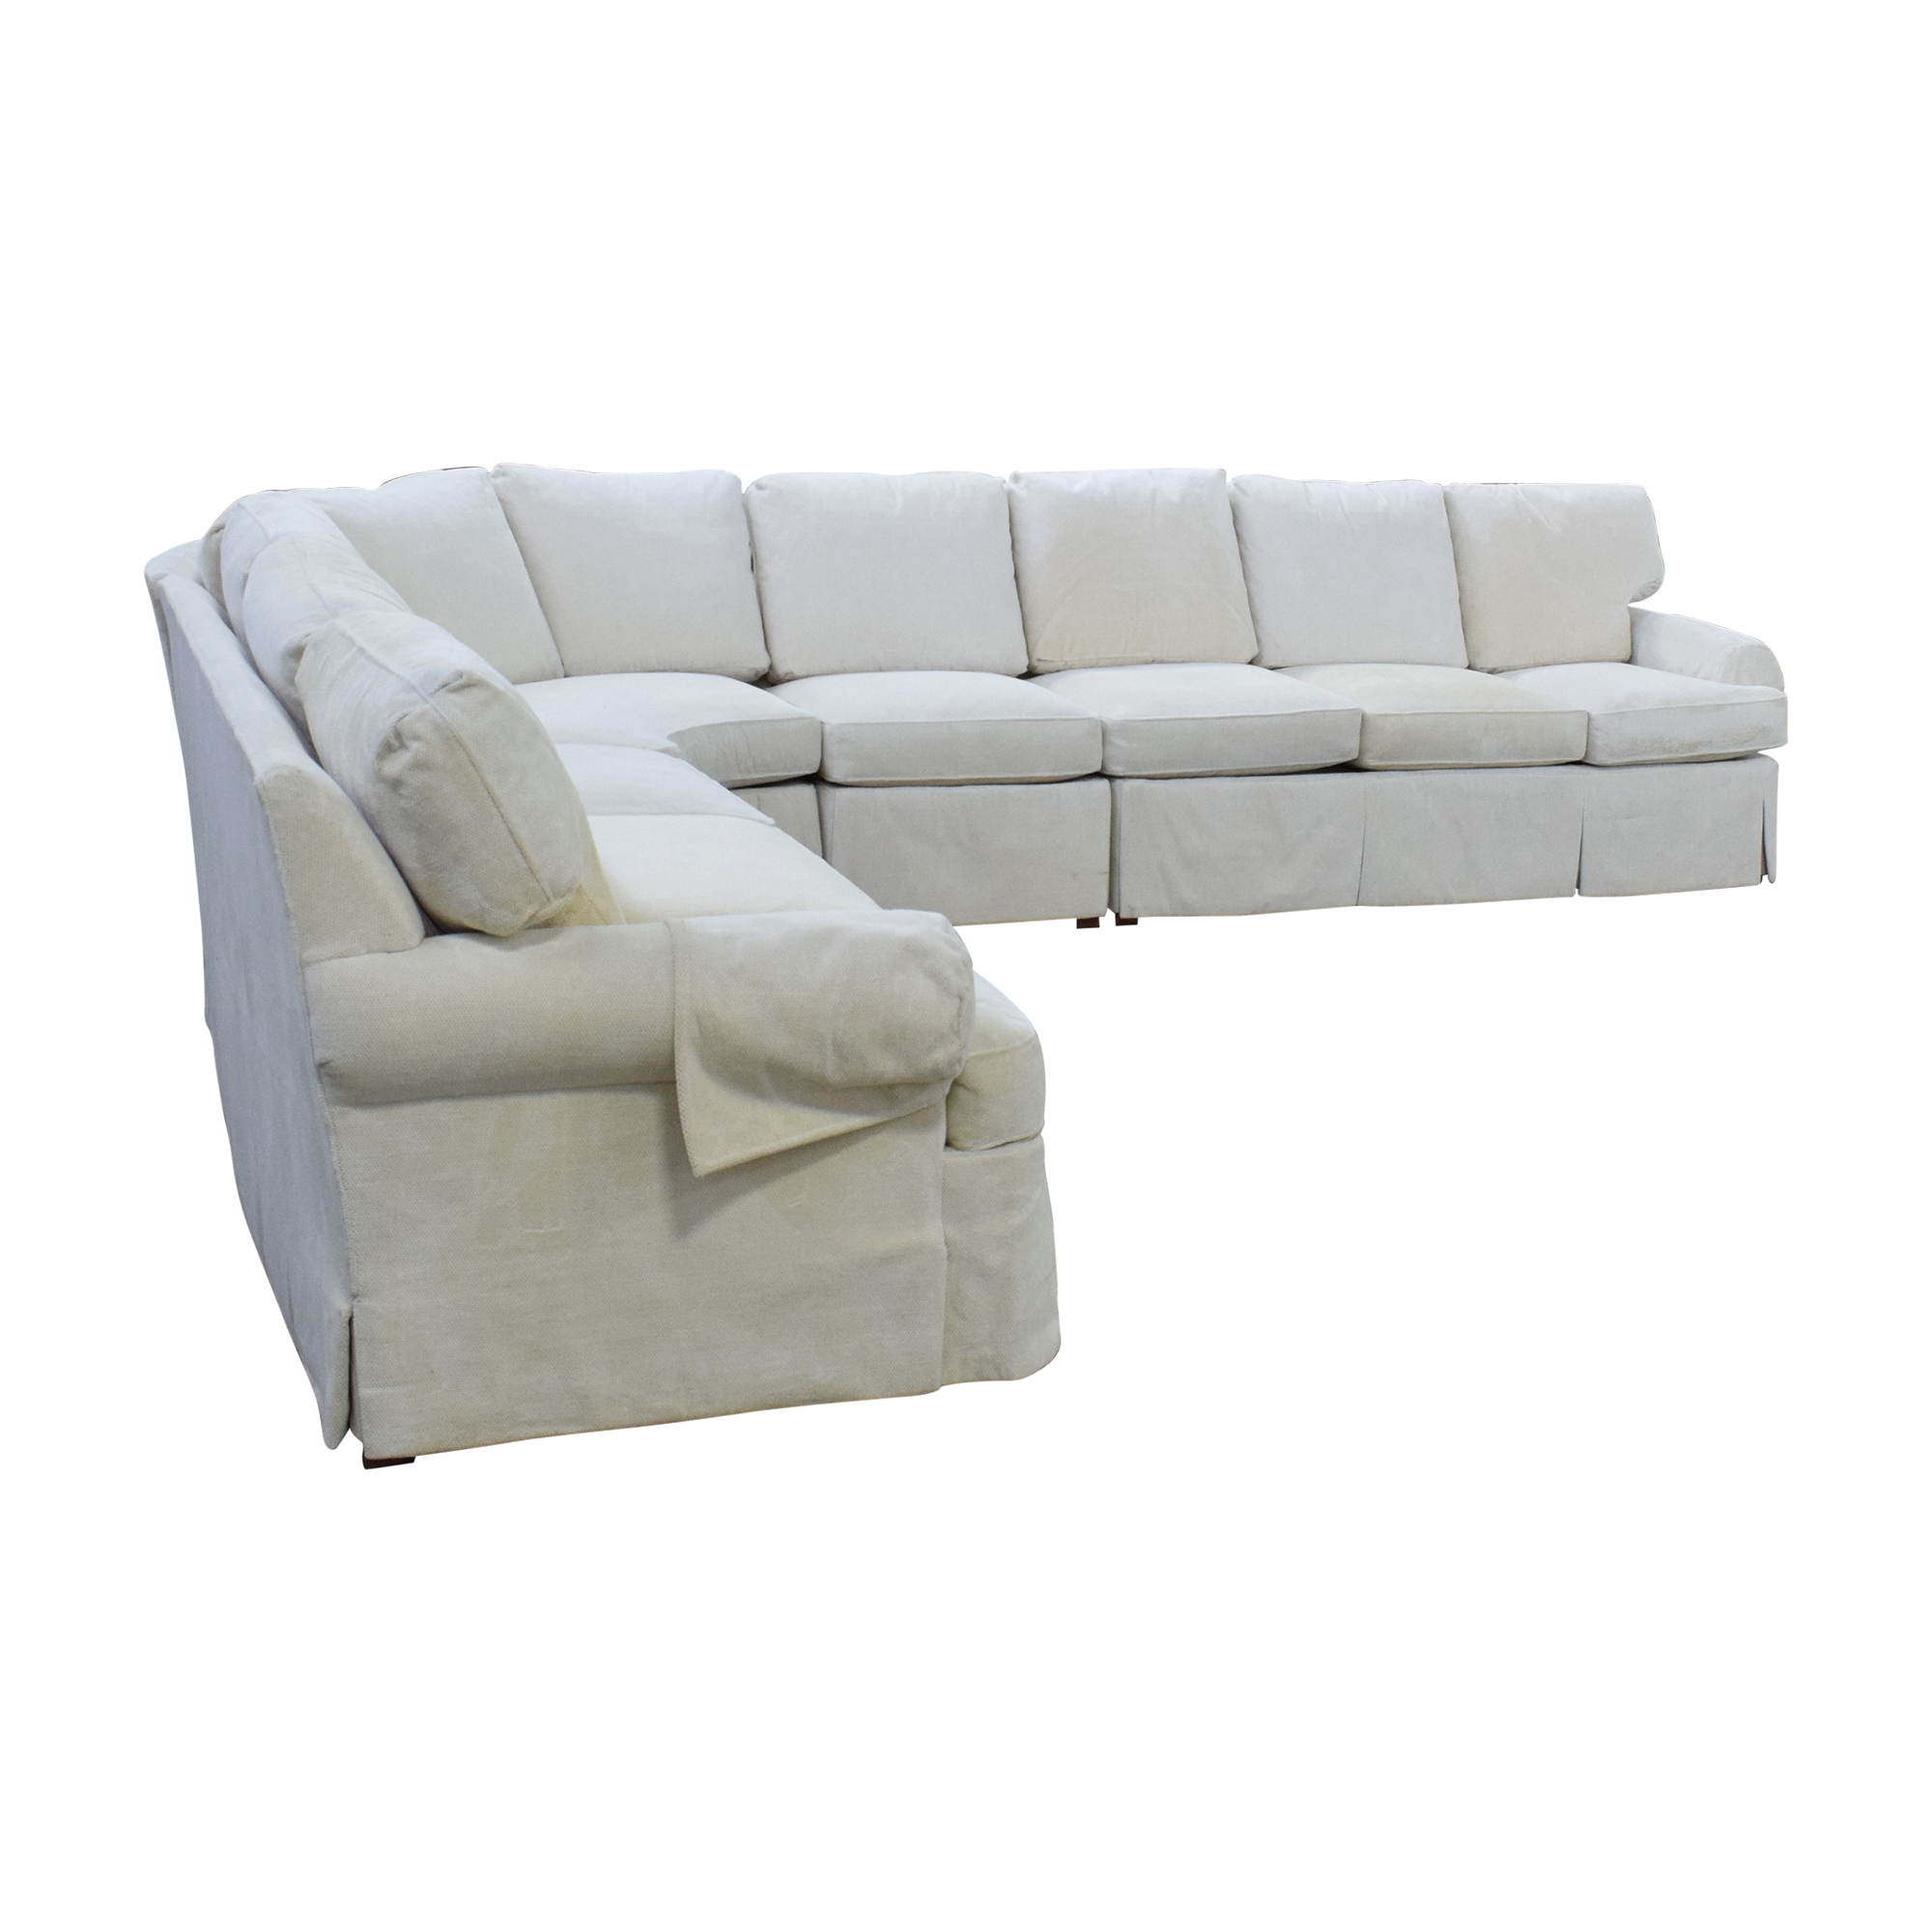 Hickory Chair Hickory Chair Sovereign Curved Sectional Sofa coupon